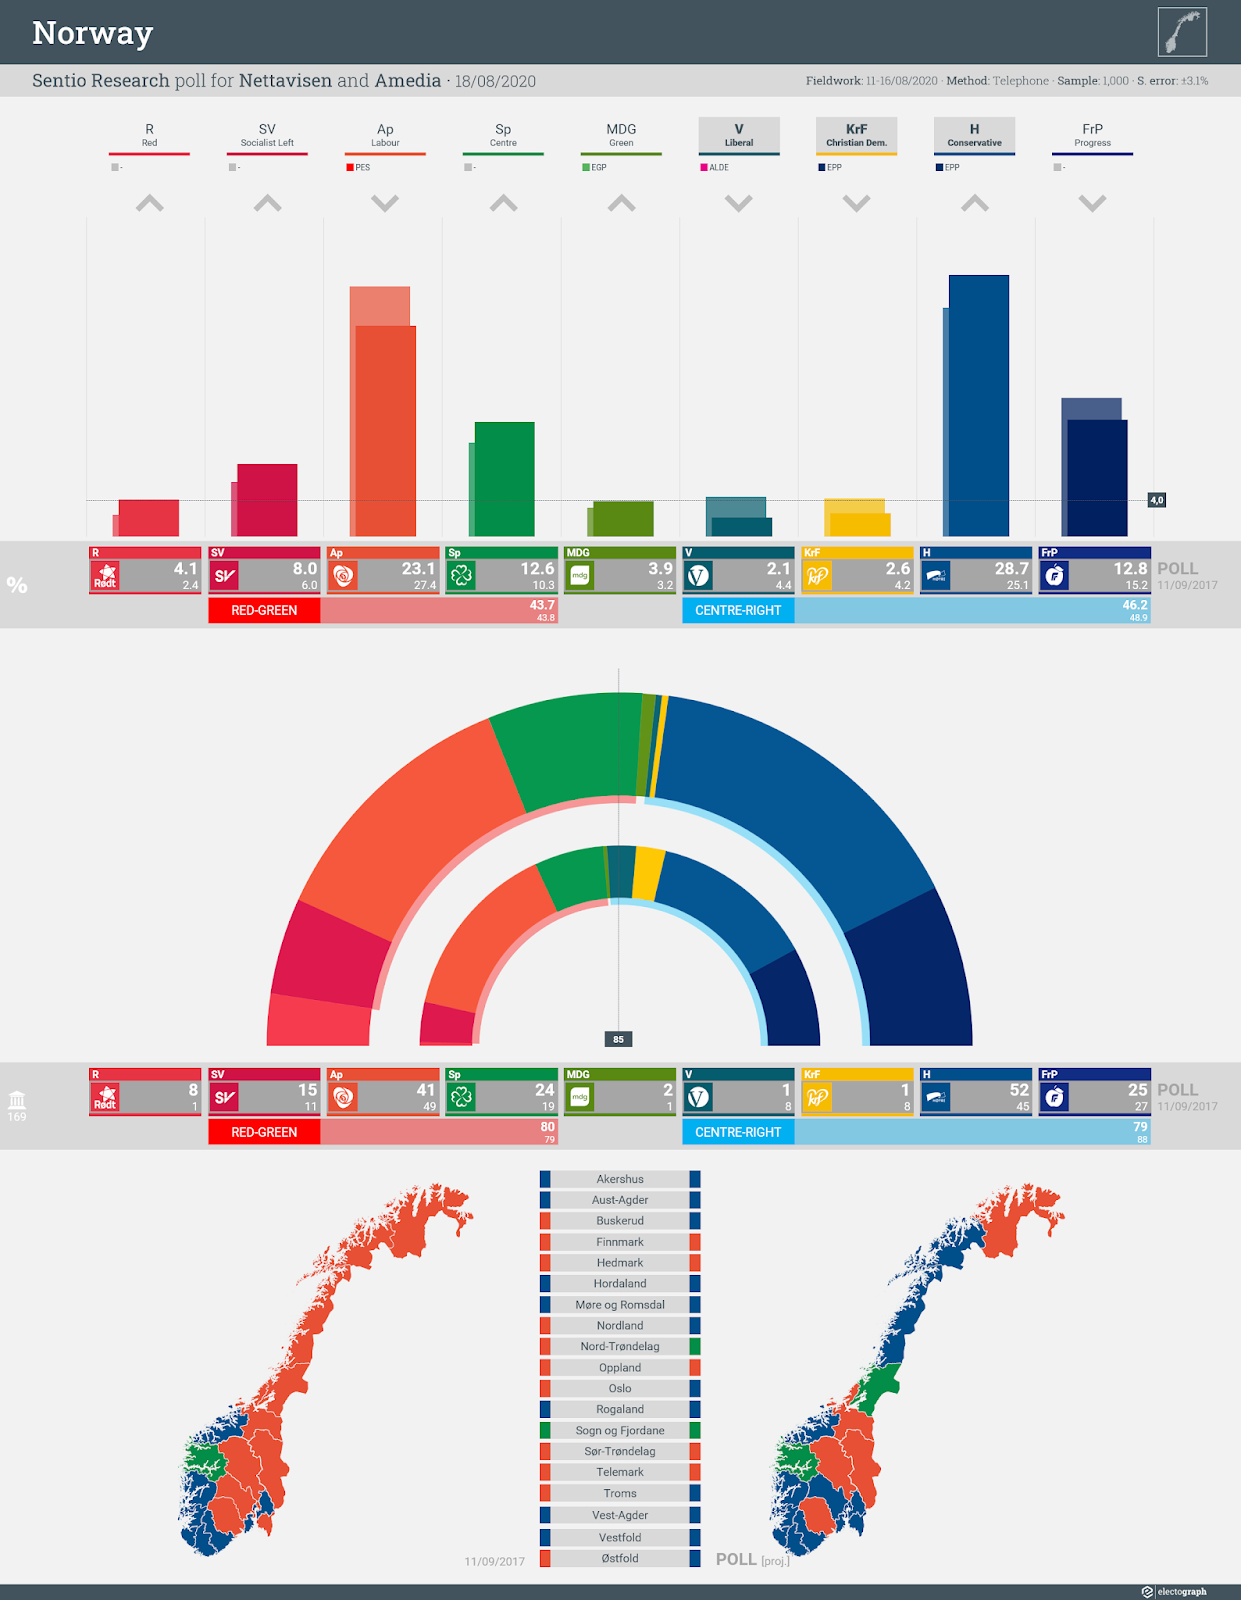 NORWAY: Sentio Research poll chart for Nettavisen and Amedia, 18 August 2020